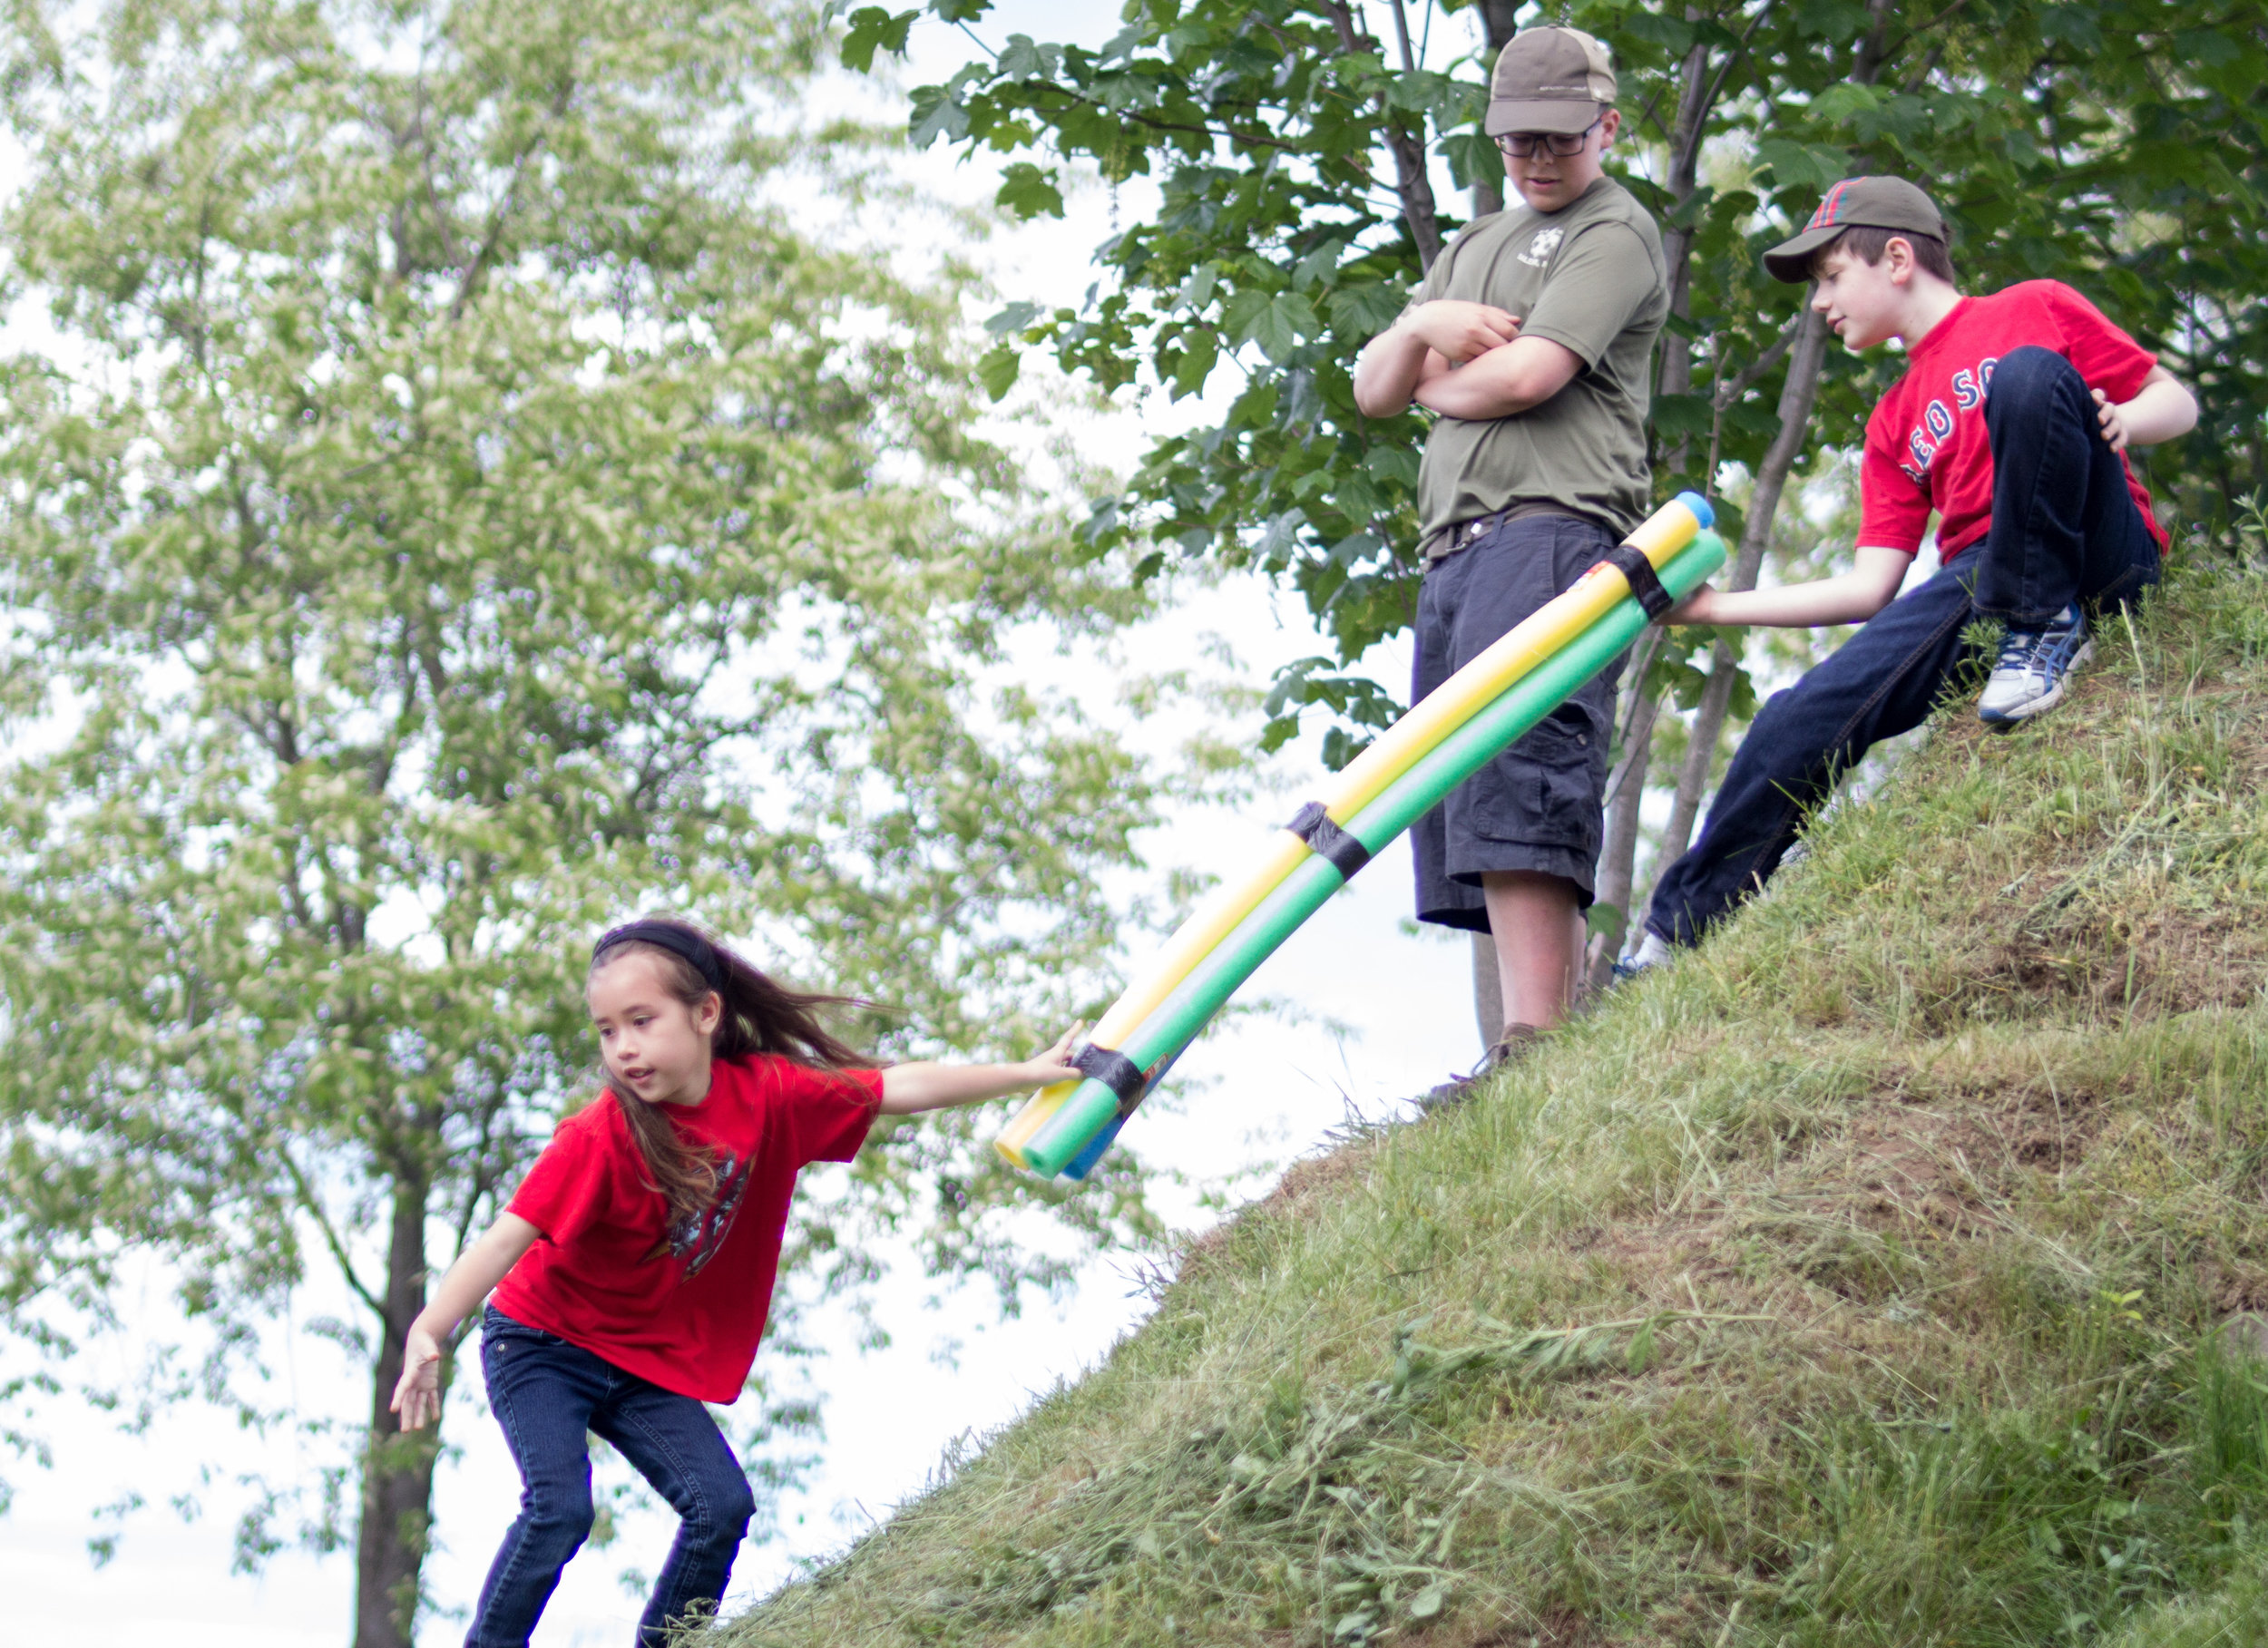 Cub Scouts Obstacle Course_08.jpg